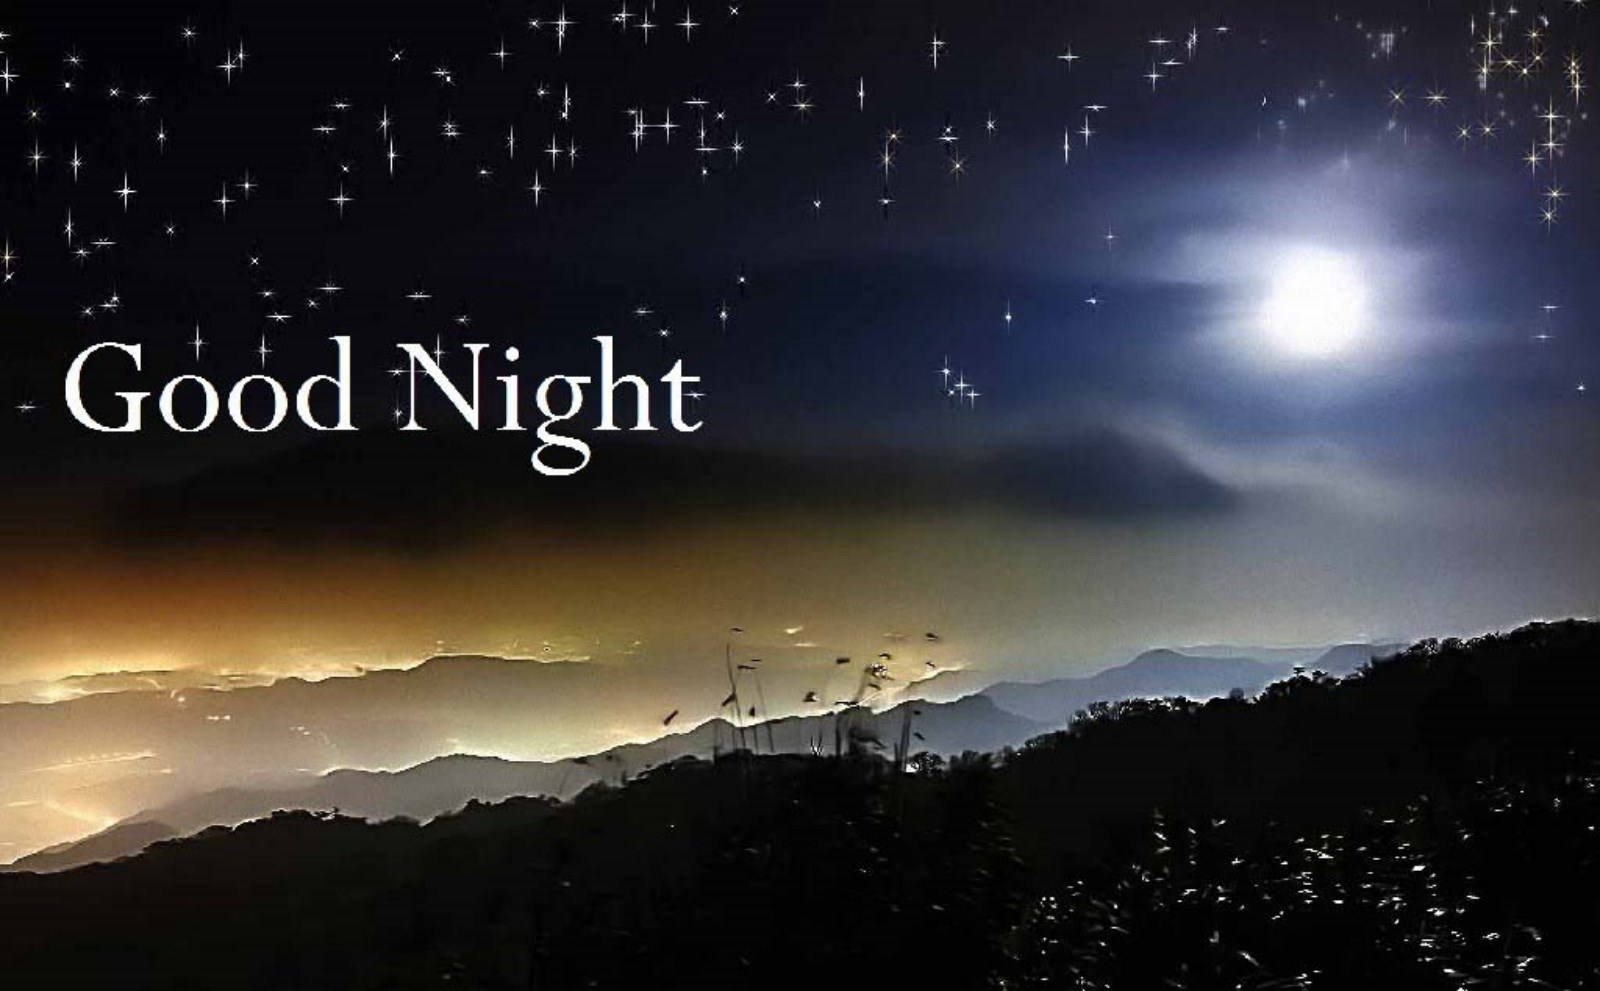 Good night images photos pics hd wallpapers download - Good night nature pic ...